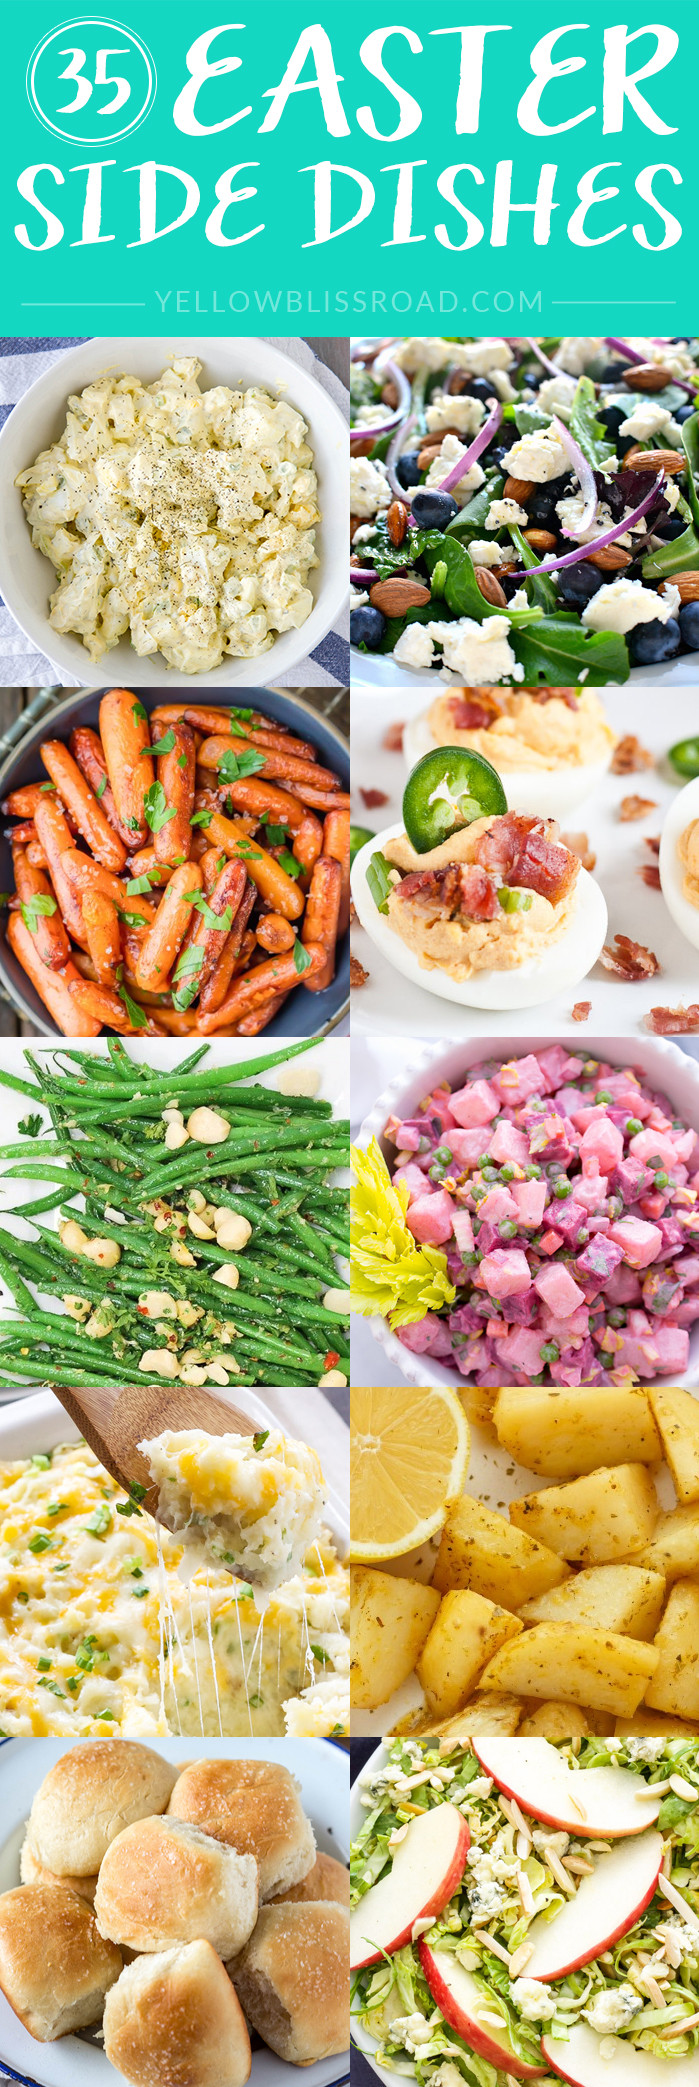 Sides For Easter Dinner  Easter Side Dishes More than 50 of the Best Sides for